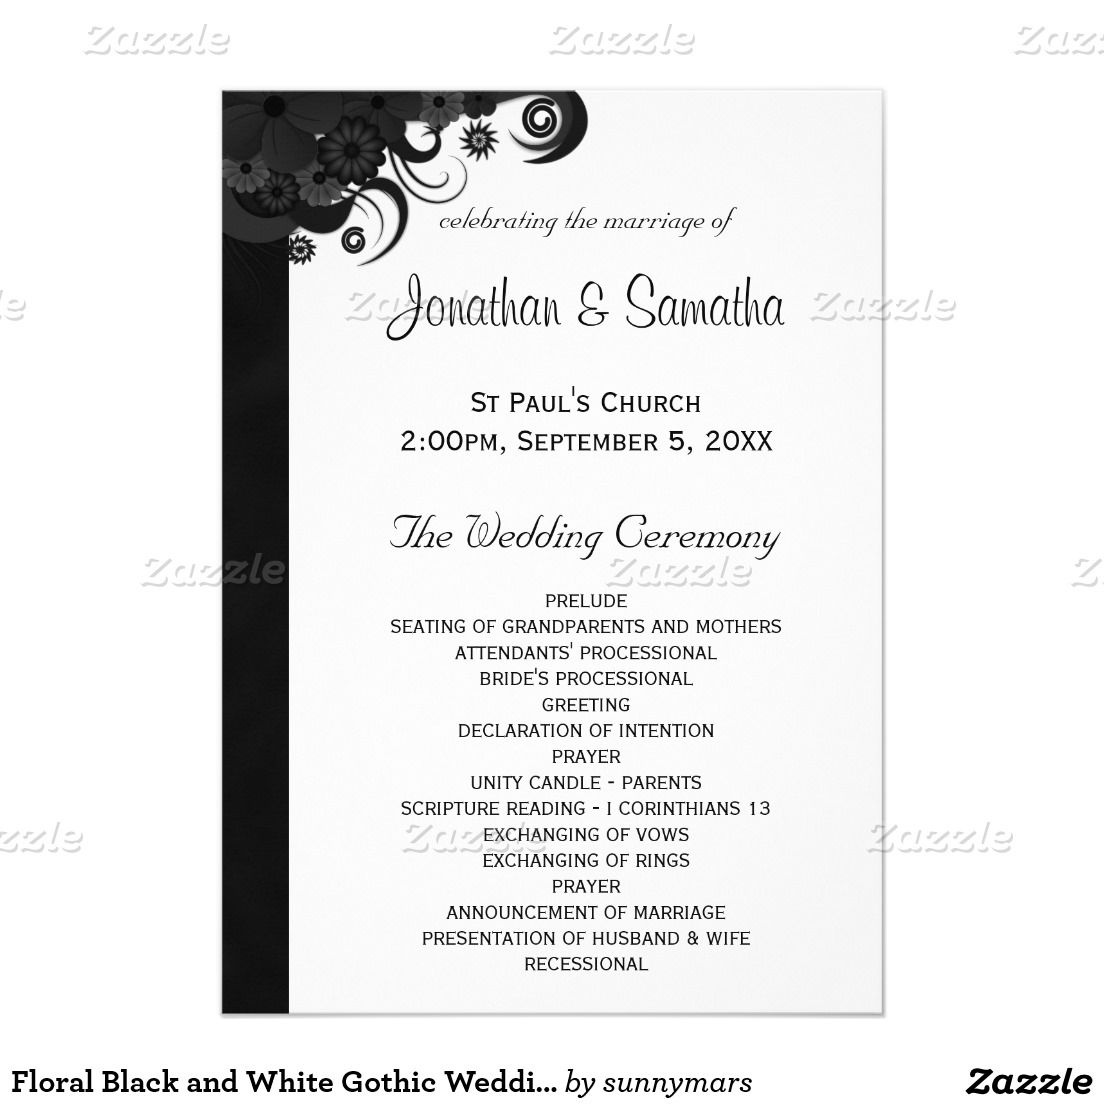 Floral Black and White Gothic Wedding Programs Gothic wedding